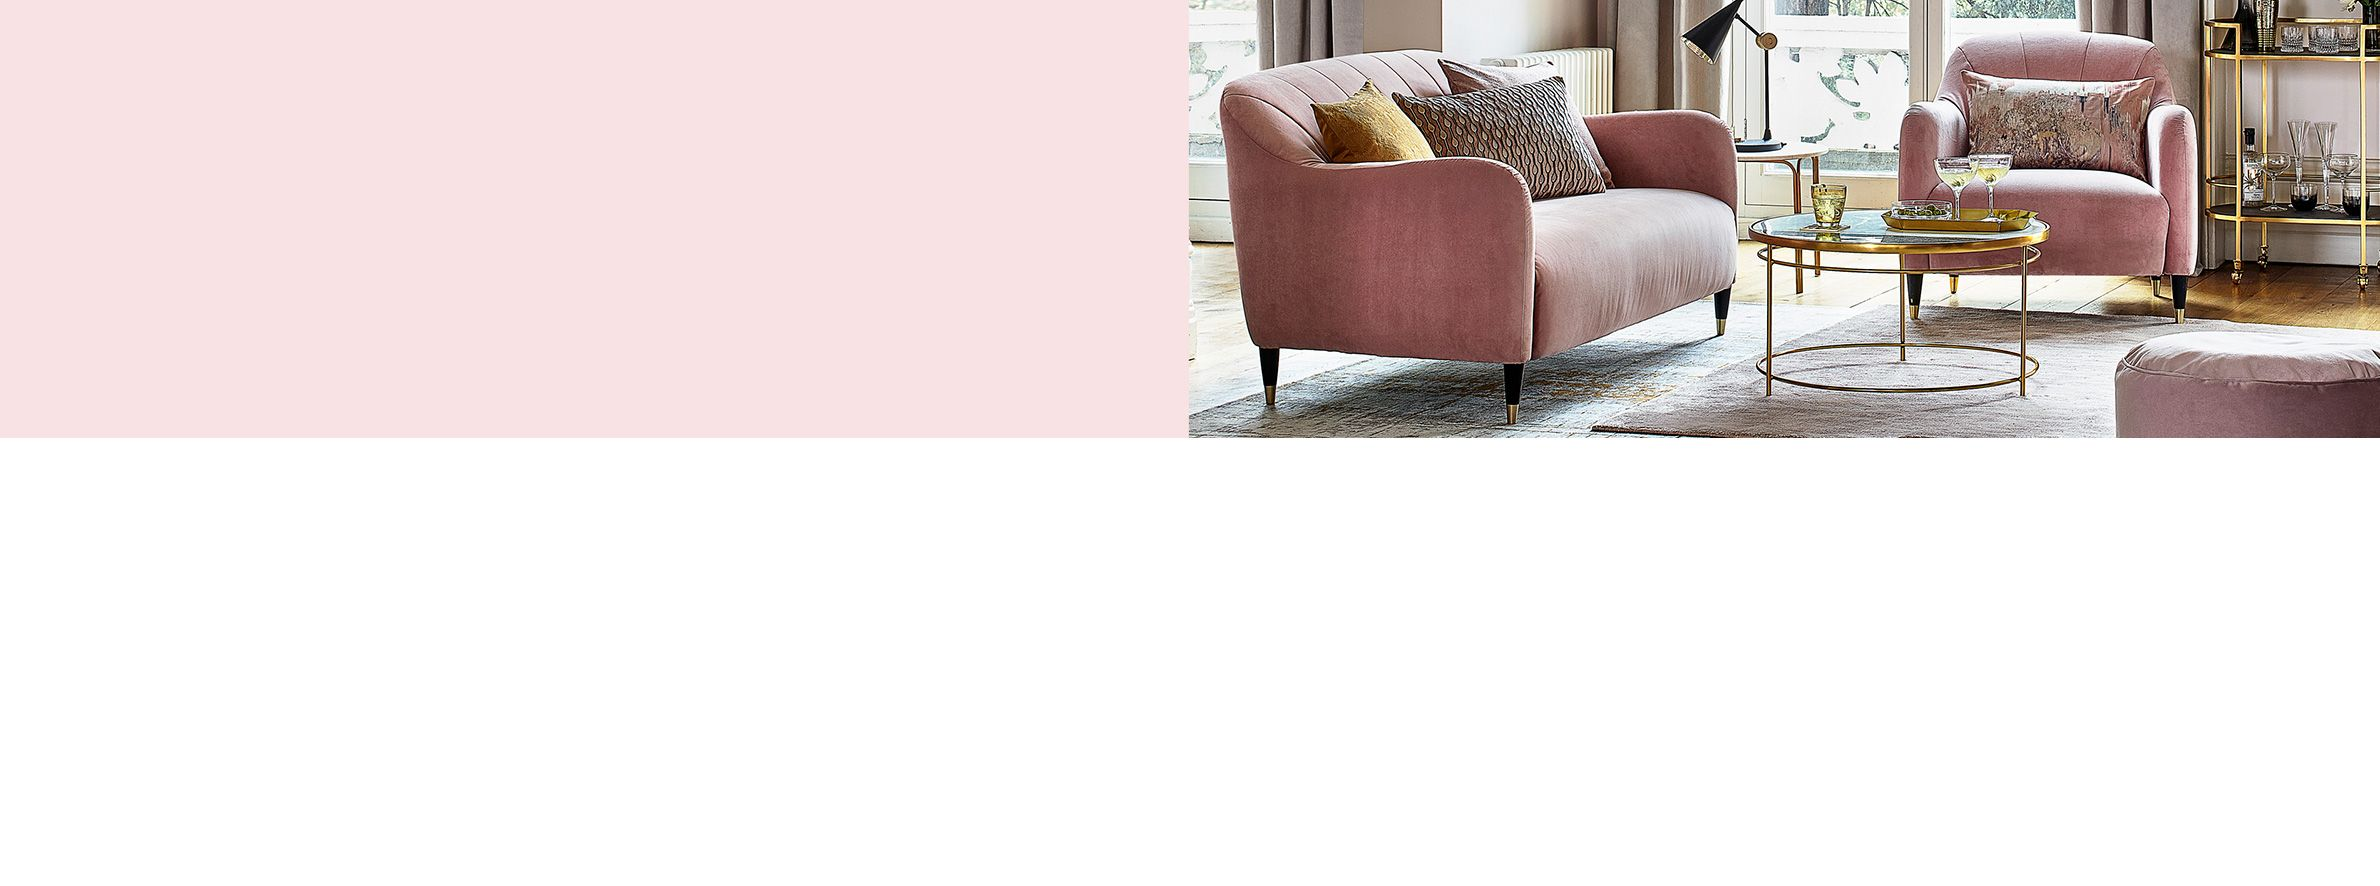 dalton sofa leon s sleeper sofabed in warm brown sofas beds john lewis partners armchairs and to suit spaces big small